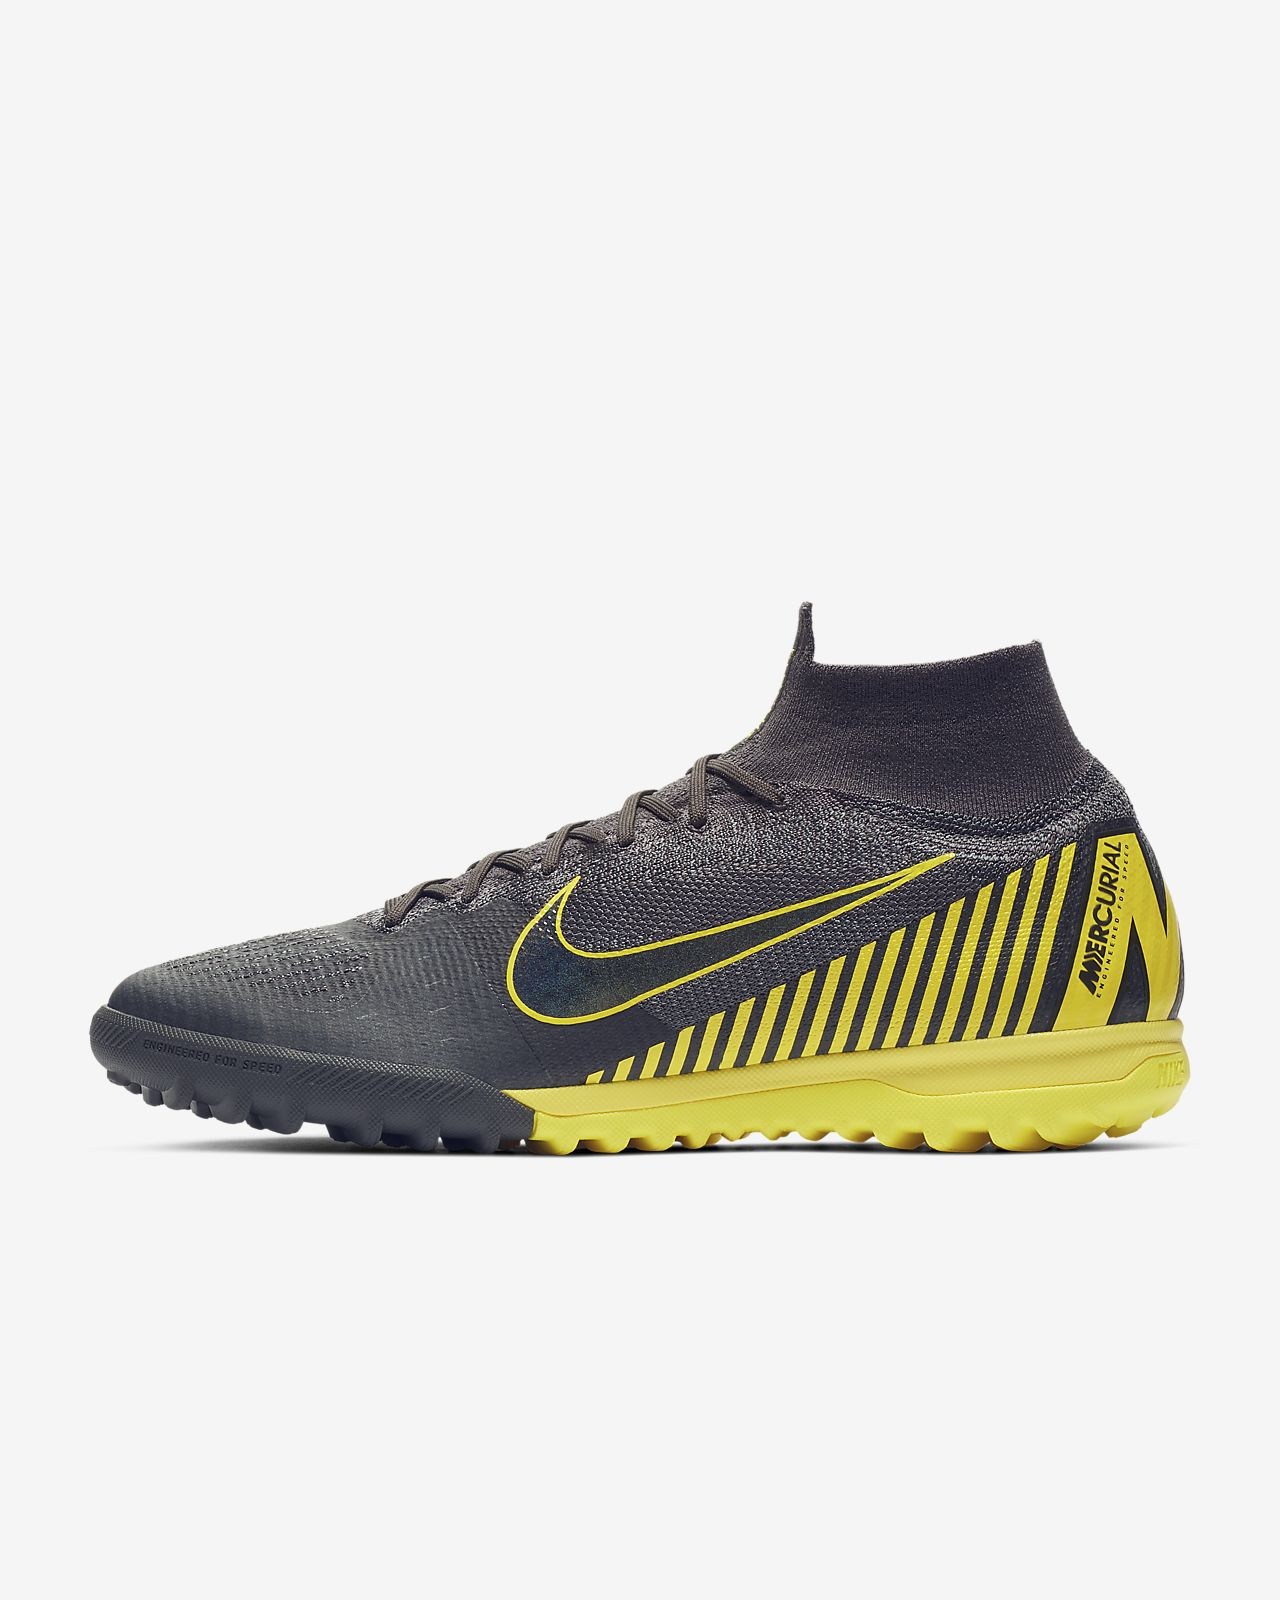 Nike SuperflyX 6 Elite TF Game Over Artificial-Turf Football Boot